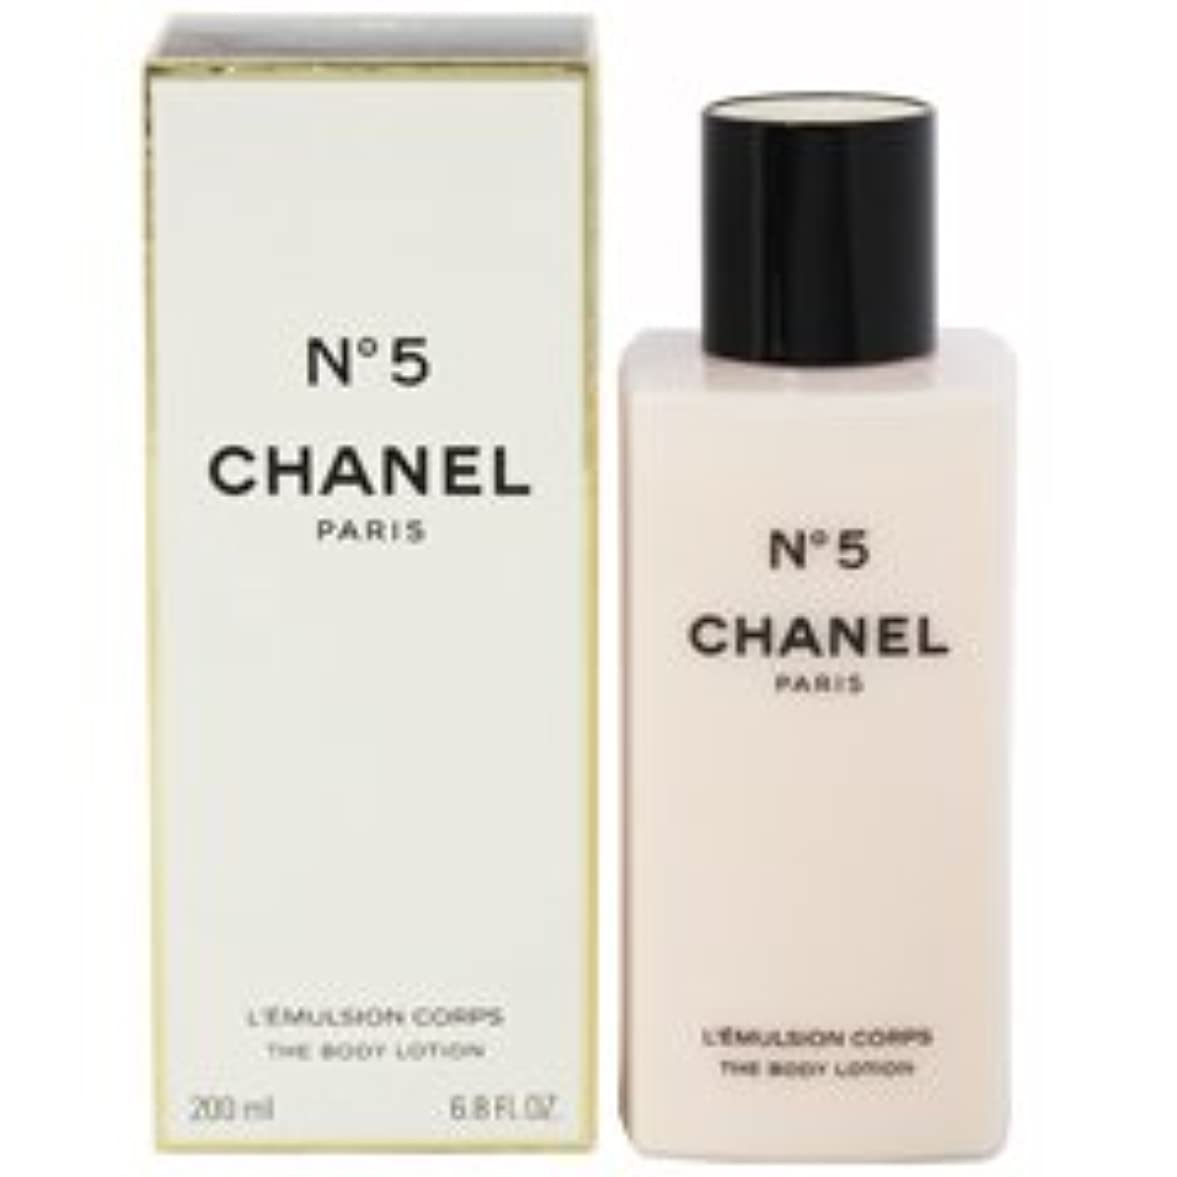 トラクター相手農学Chanel No. 5 (シャネル No. 5 ) 6.8 oz (200ml) Body Lotion for Women